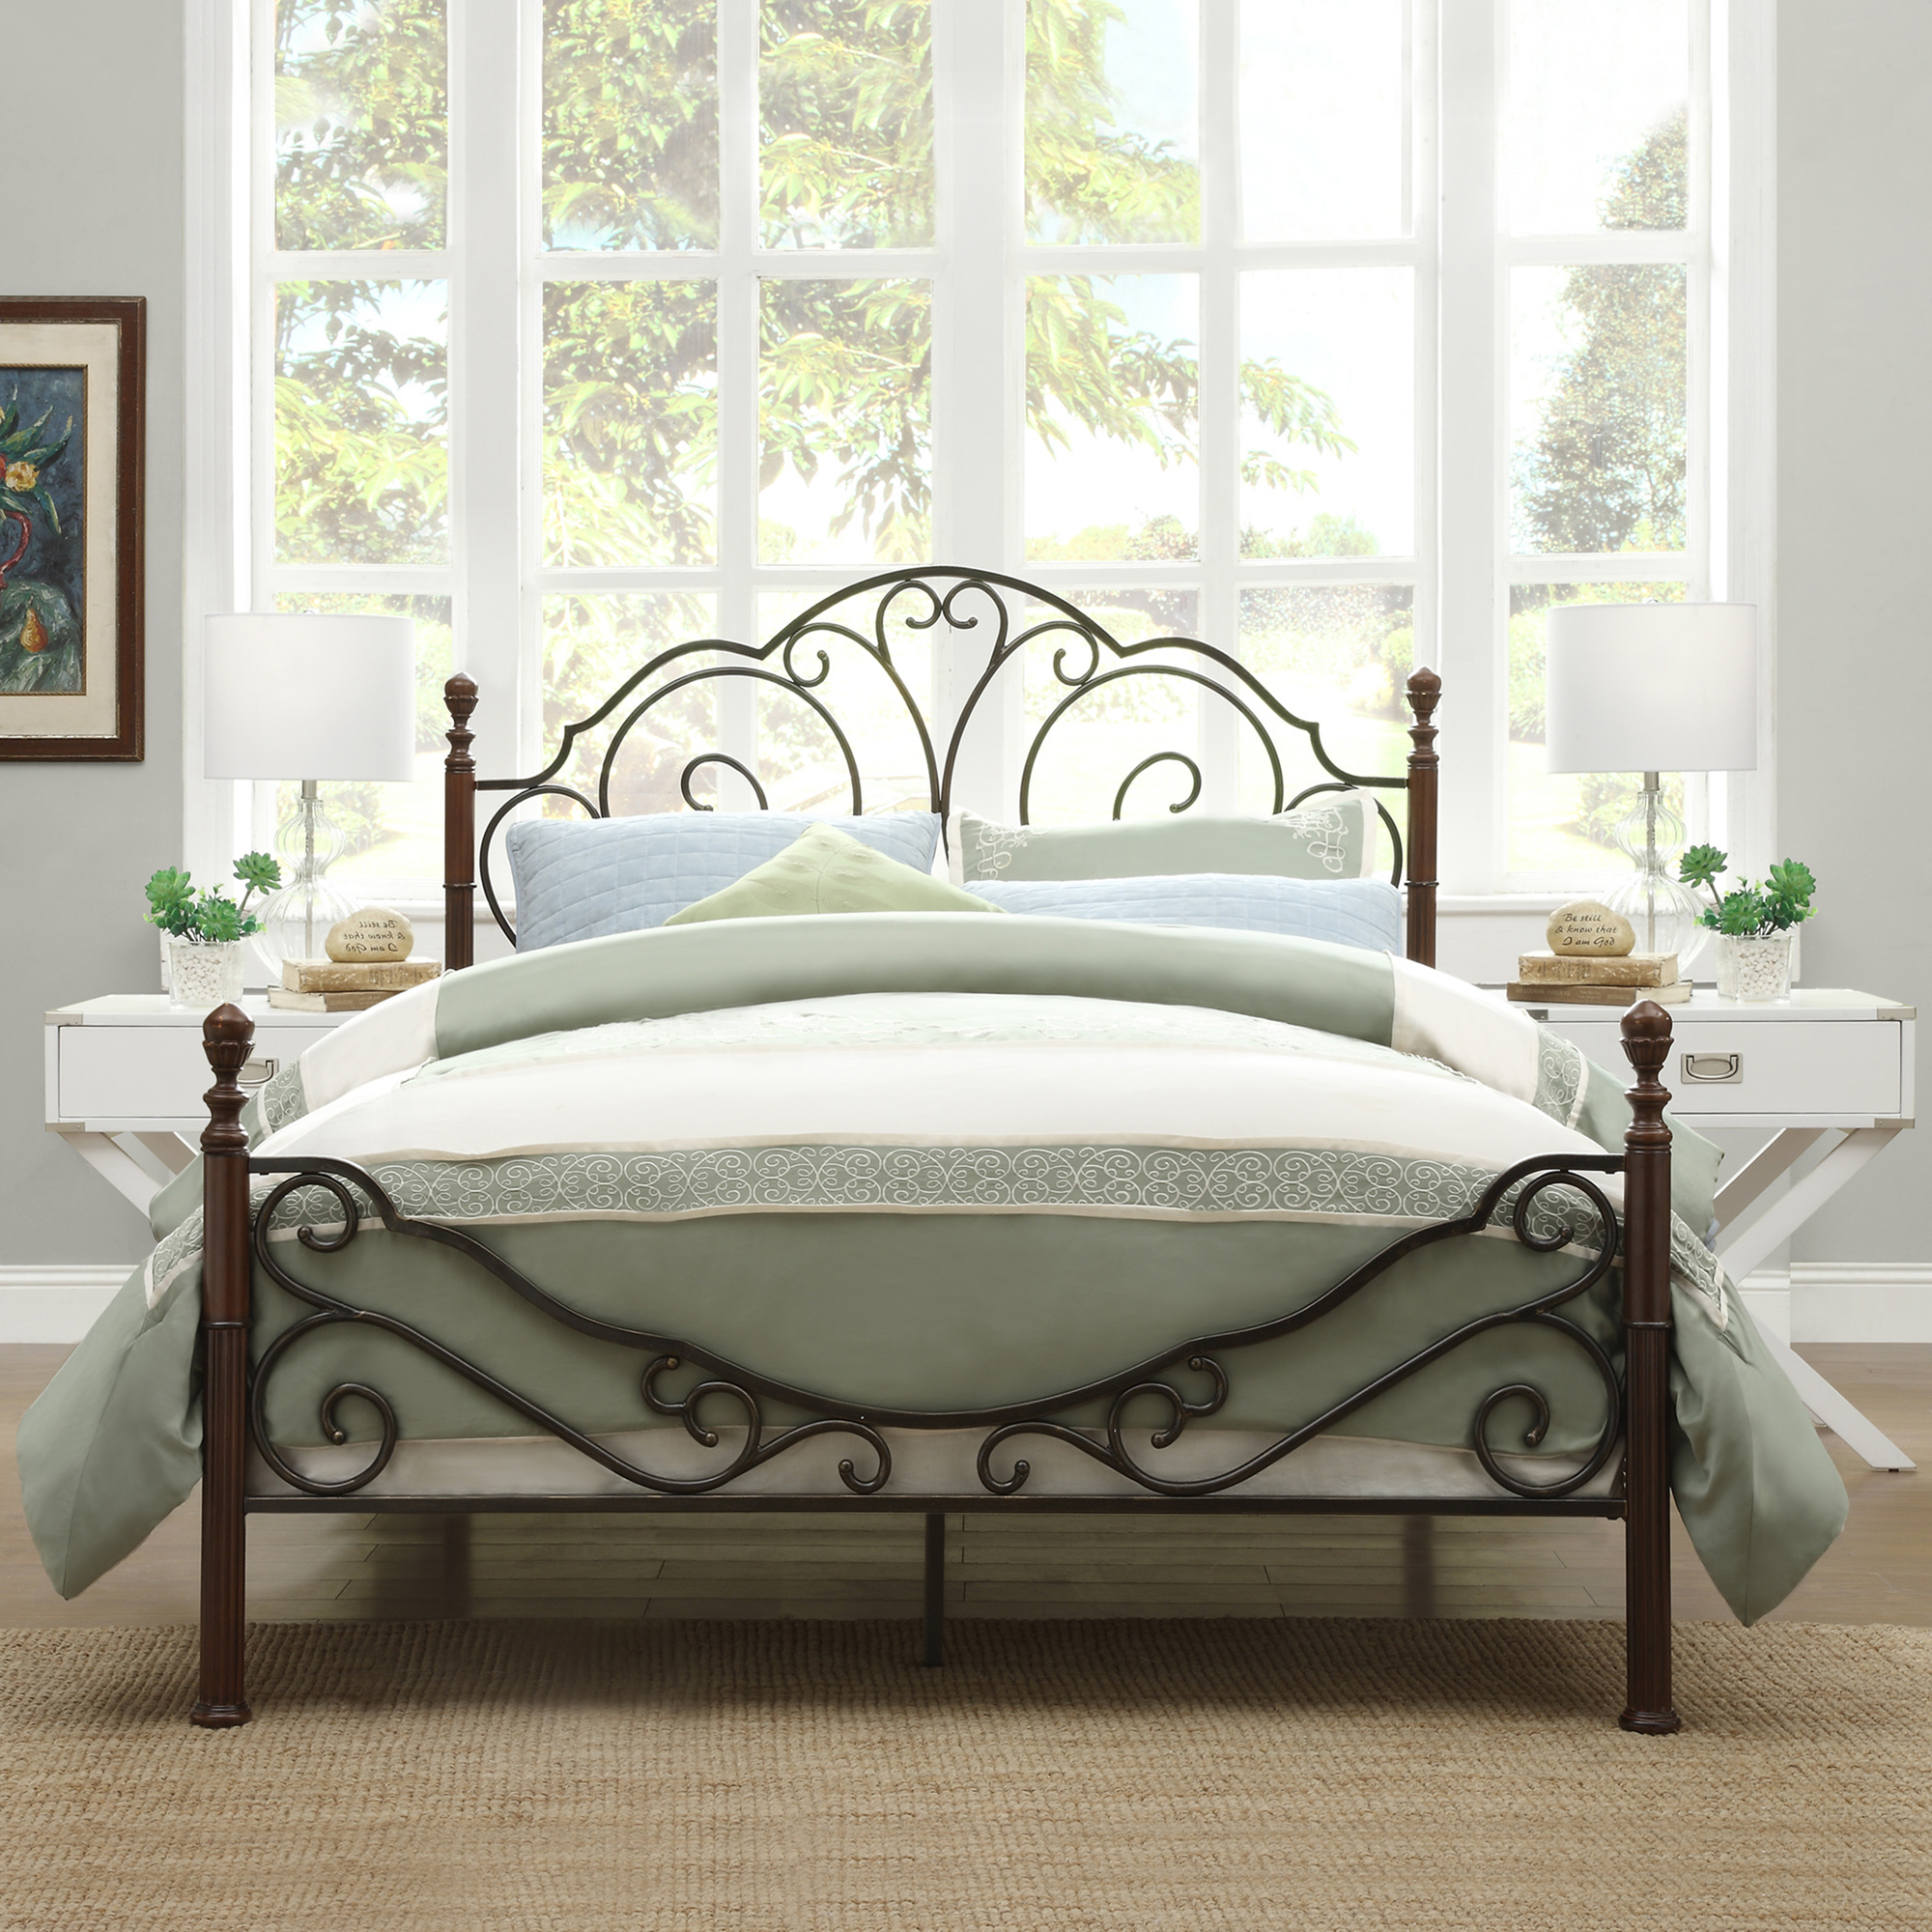 Weston Home Adison Graceful Scrolls Poster Metal Bed, Multiple Sizes